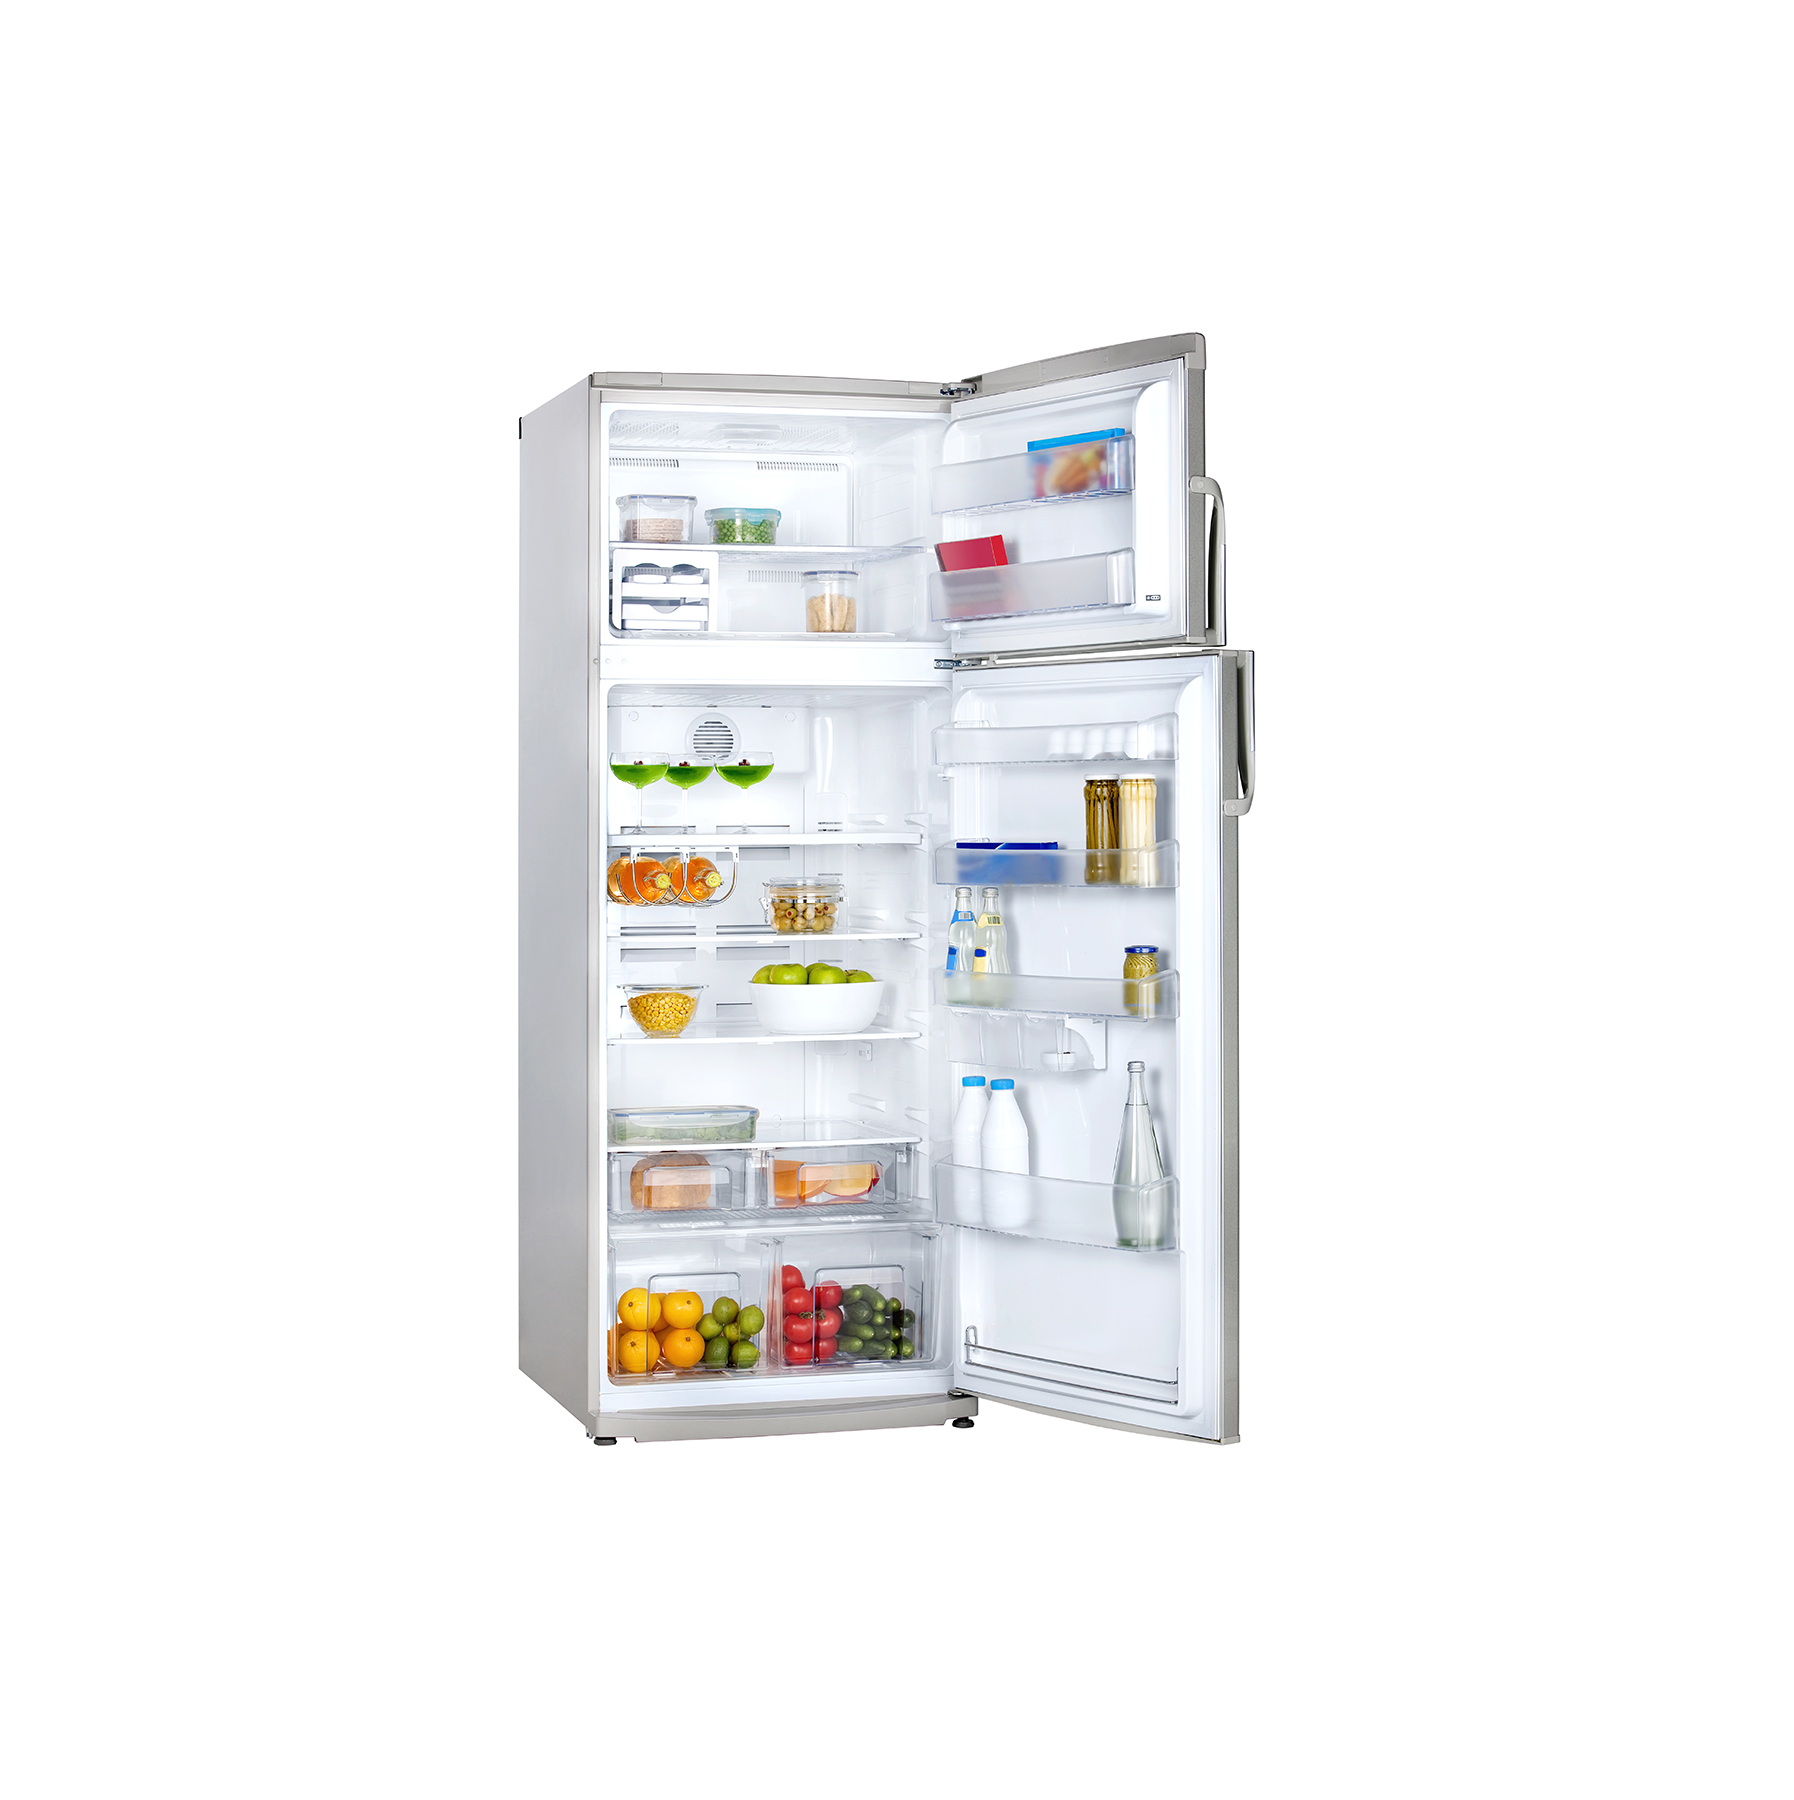 Open refrigerator on white